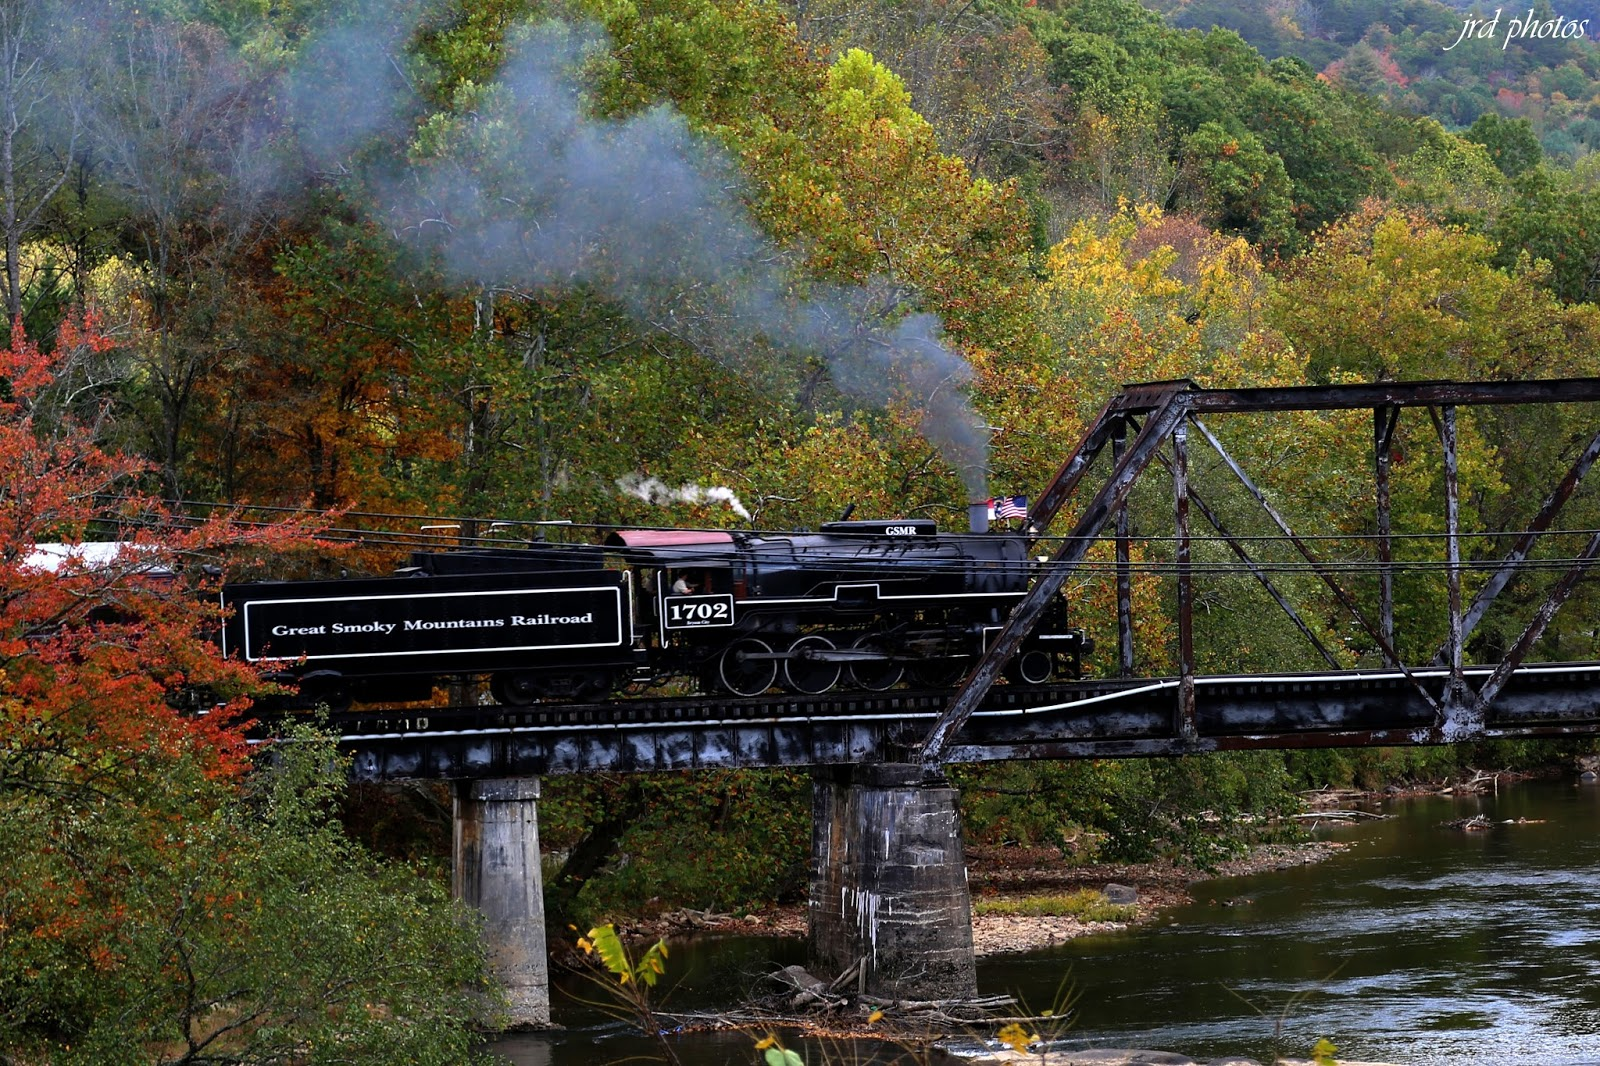 Nov 30,  · A mile rail journey through valleys, inside winding tunnels and across spectacular gorges of the Great Smoky Mountains.4/4(K).